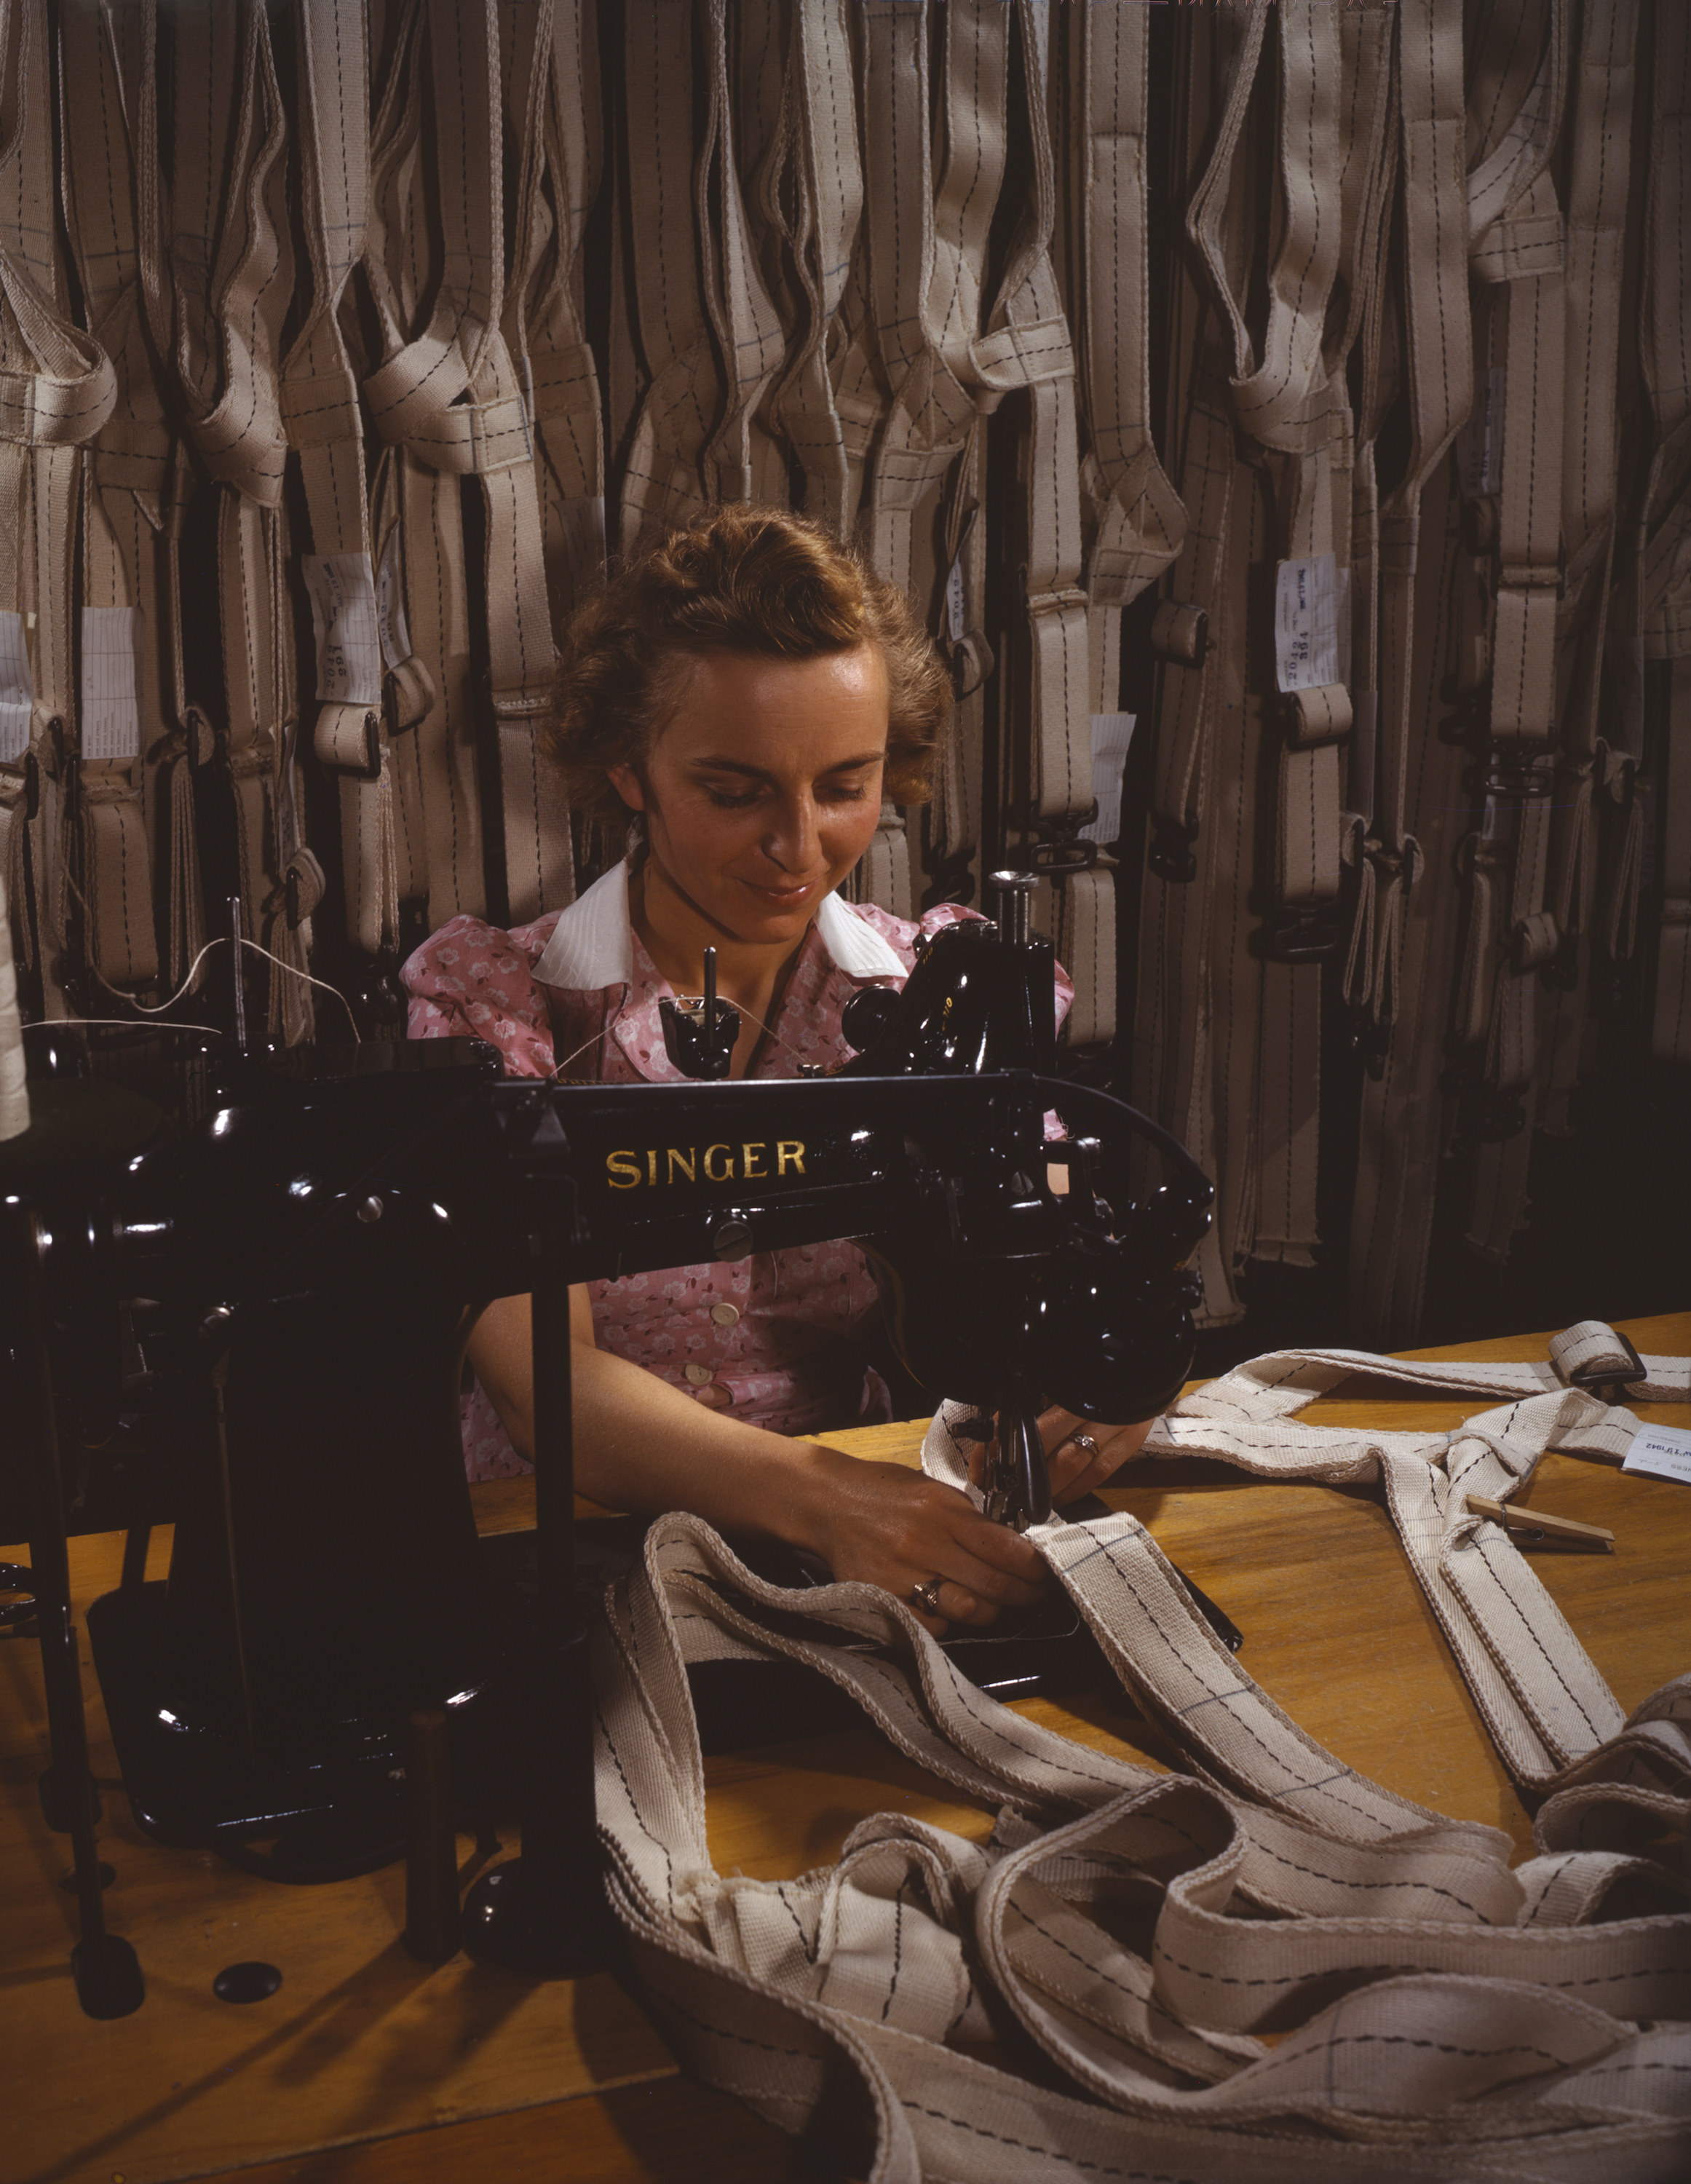 Sewing Harnesses for Military Parachutes in WWII